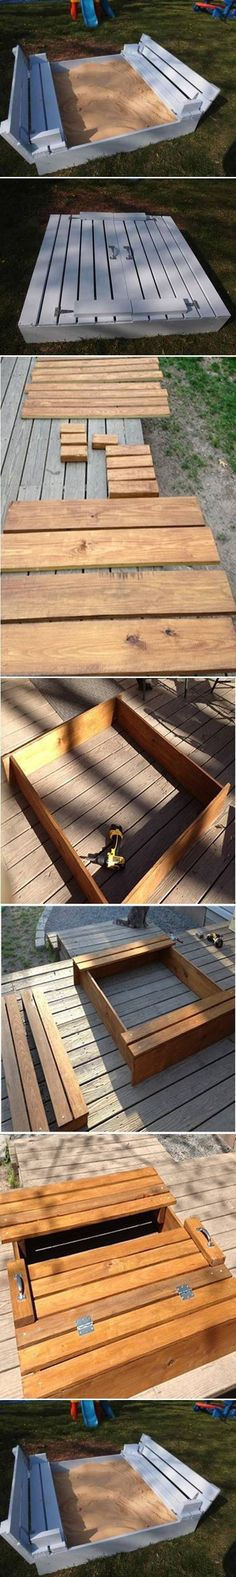 DIY Sandbox outdoors diy easy crafts diy ideas diy crafts do it yourself easy…